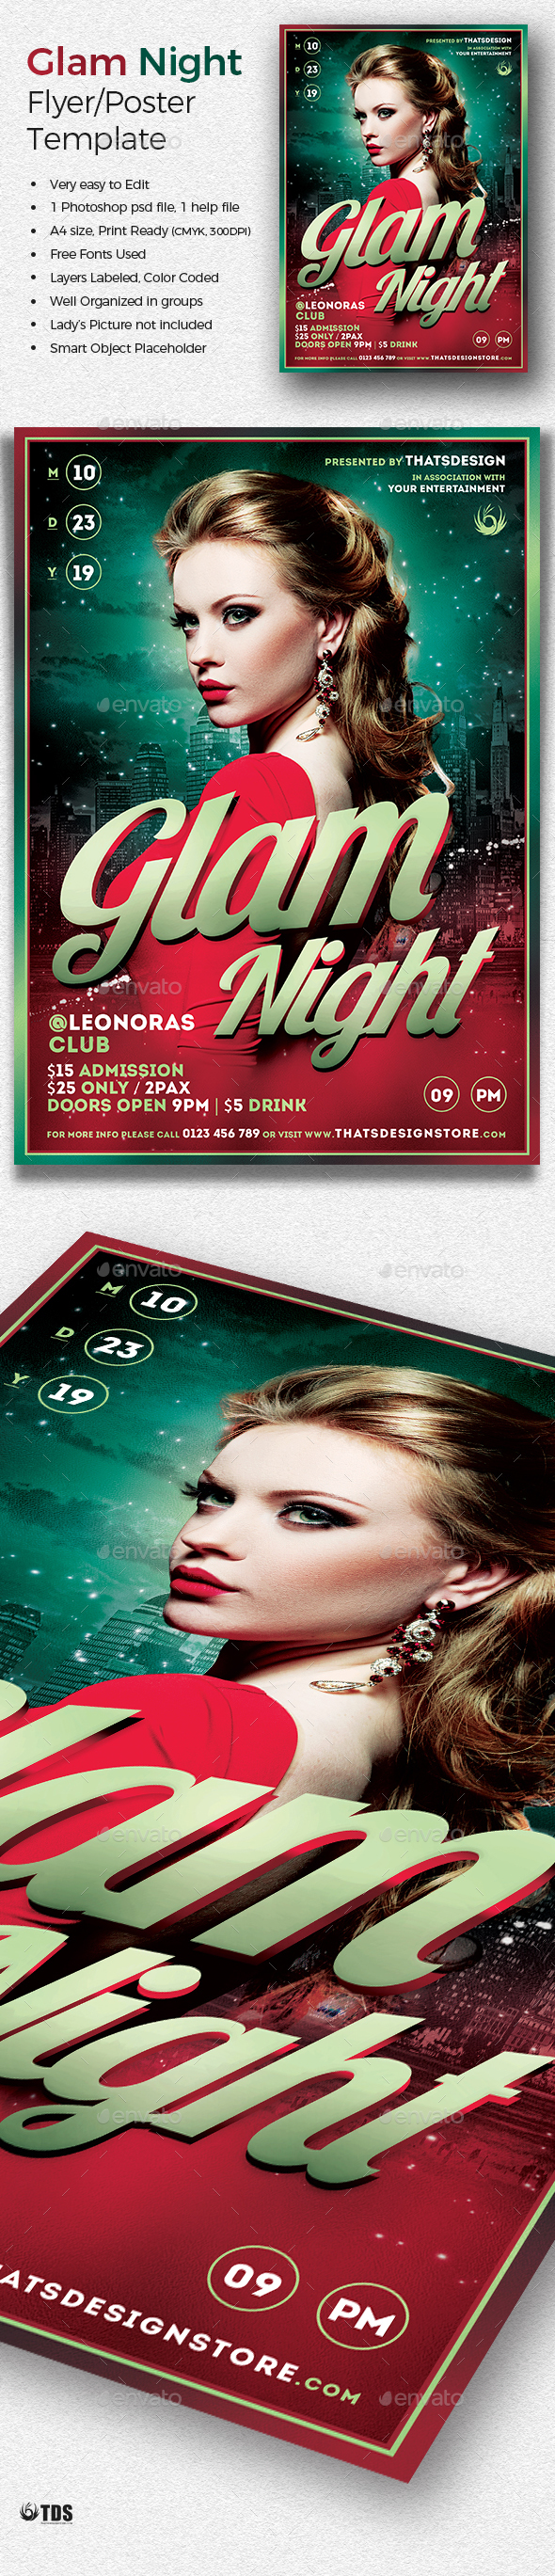 Glam Night Flyer Template - Clubs & Parties Events